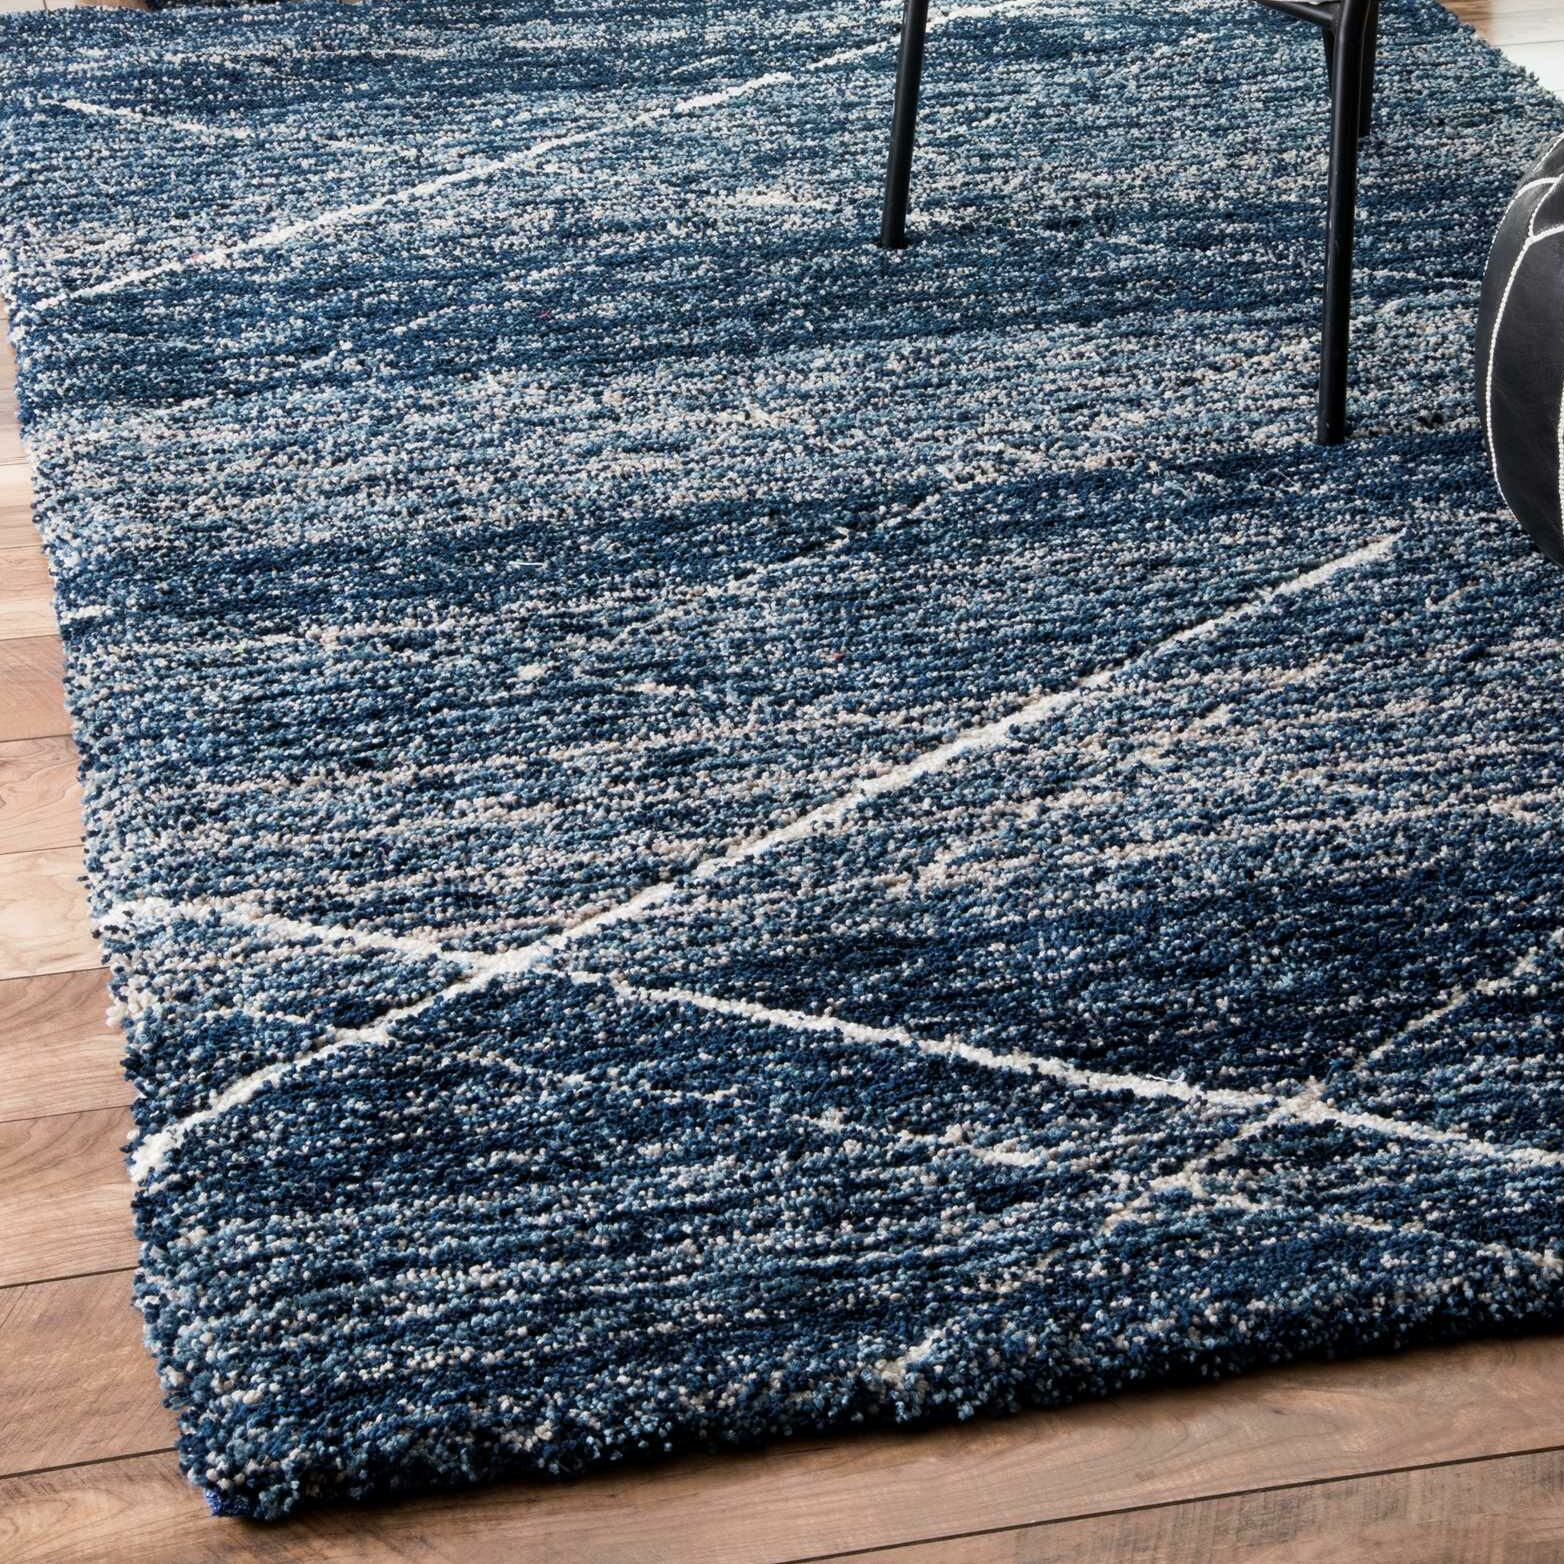 Hickman Hand-Tufted Blue Area Rug Rug Size: Rectangle 6' x 9'